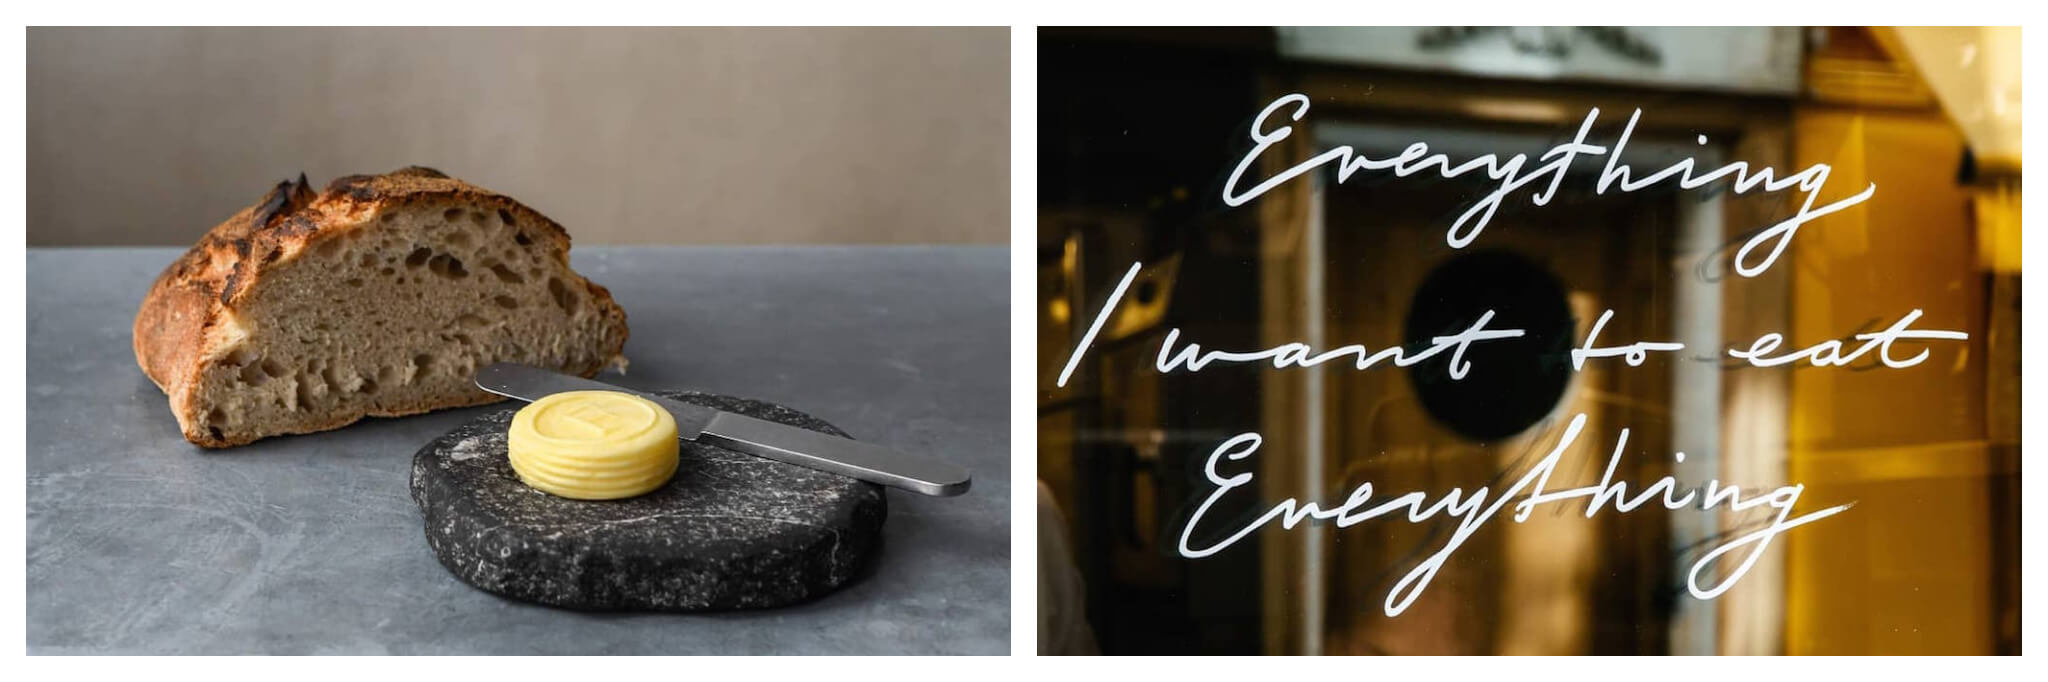 """Left: Half a loaf of bread sits next to a disk of fresh butter, Right: The words """"Everything, I want to eat everything"""" is written on the window of Frenchie restaurant in Paris."""